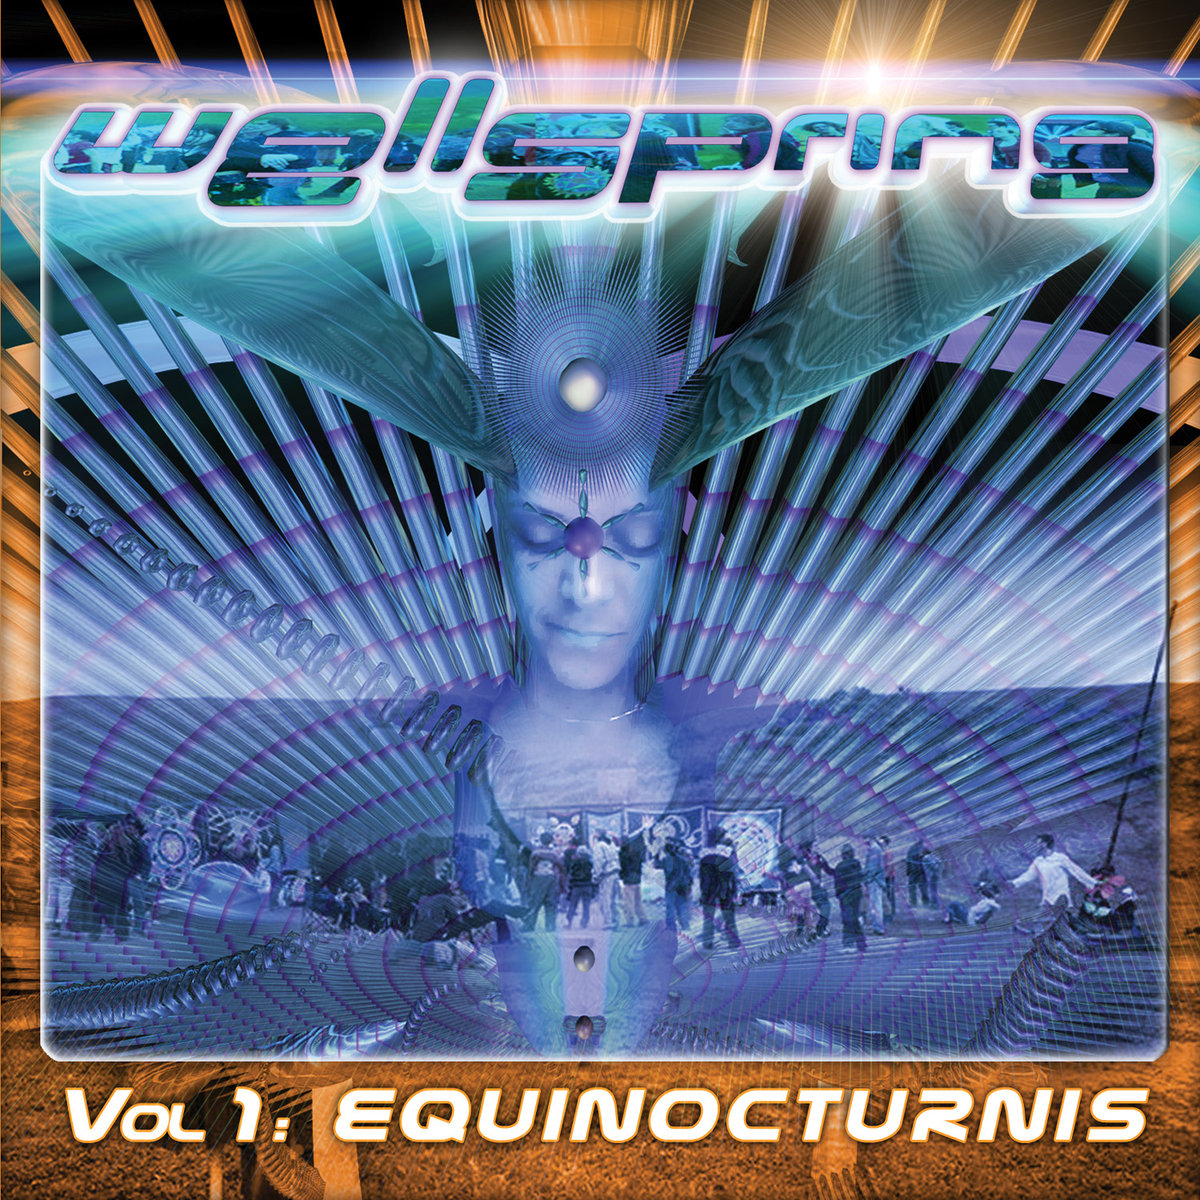 Rob-Ot - 1999 @ 'Various Artists - Wellspring Vol. 1: Equinocturnis' album (electronic, goa)